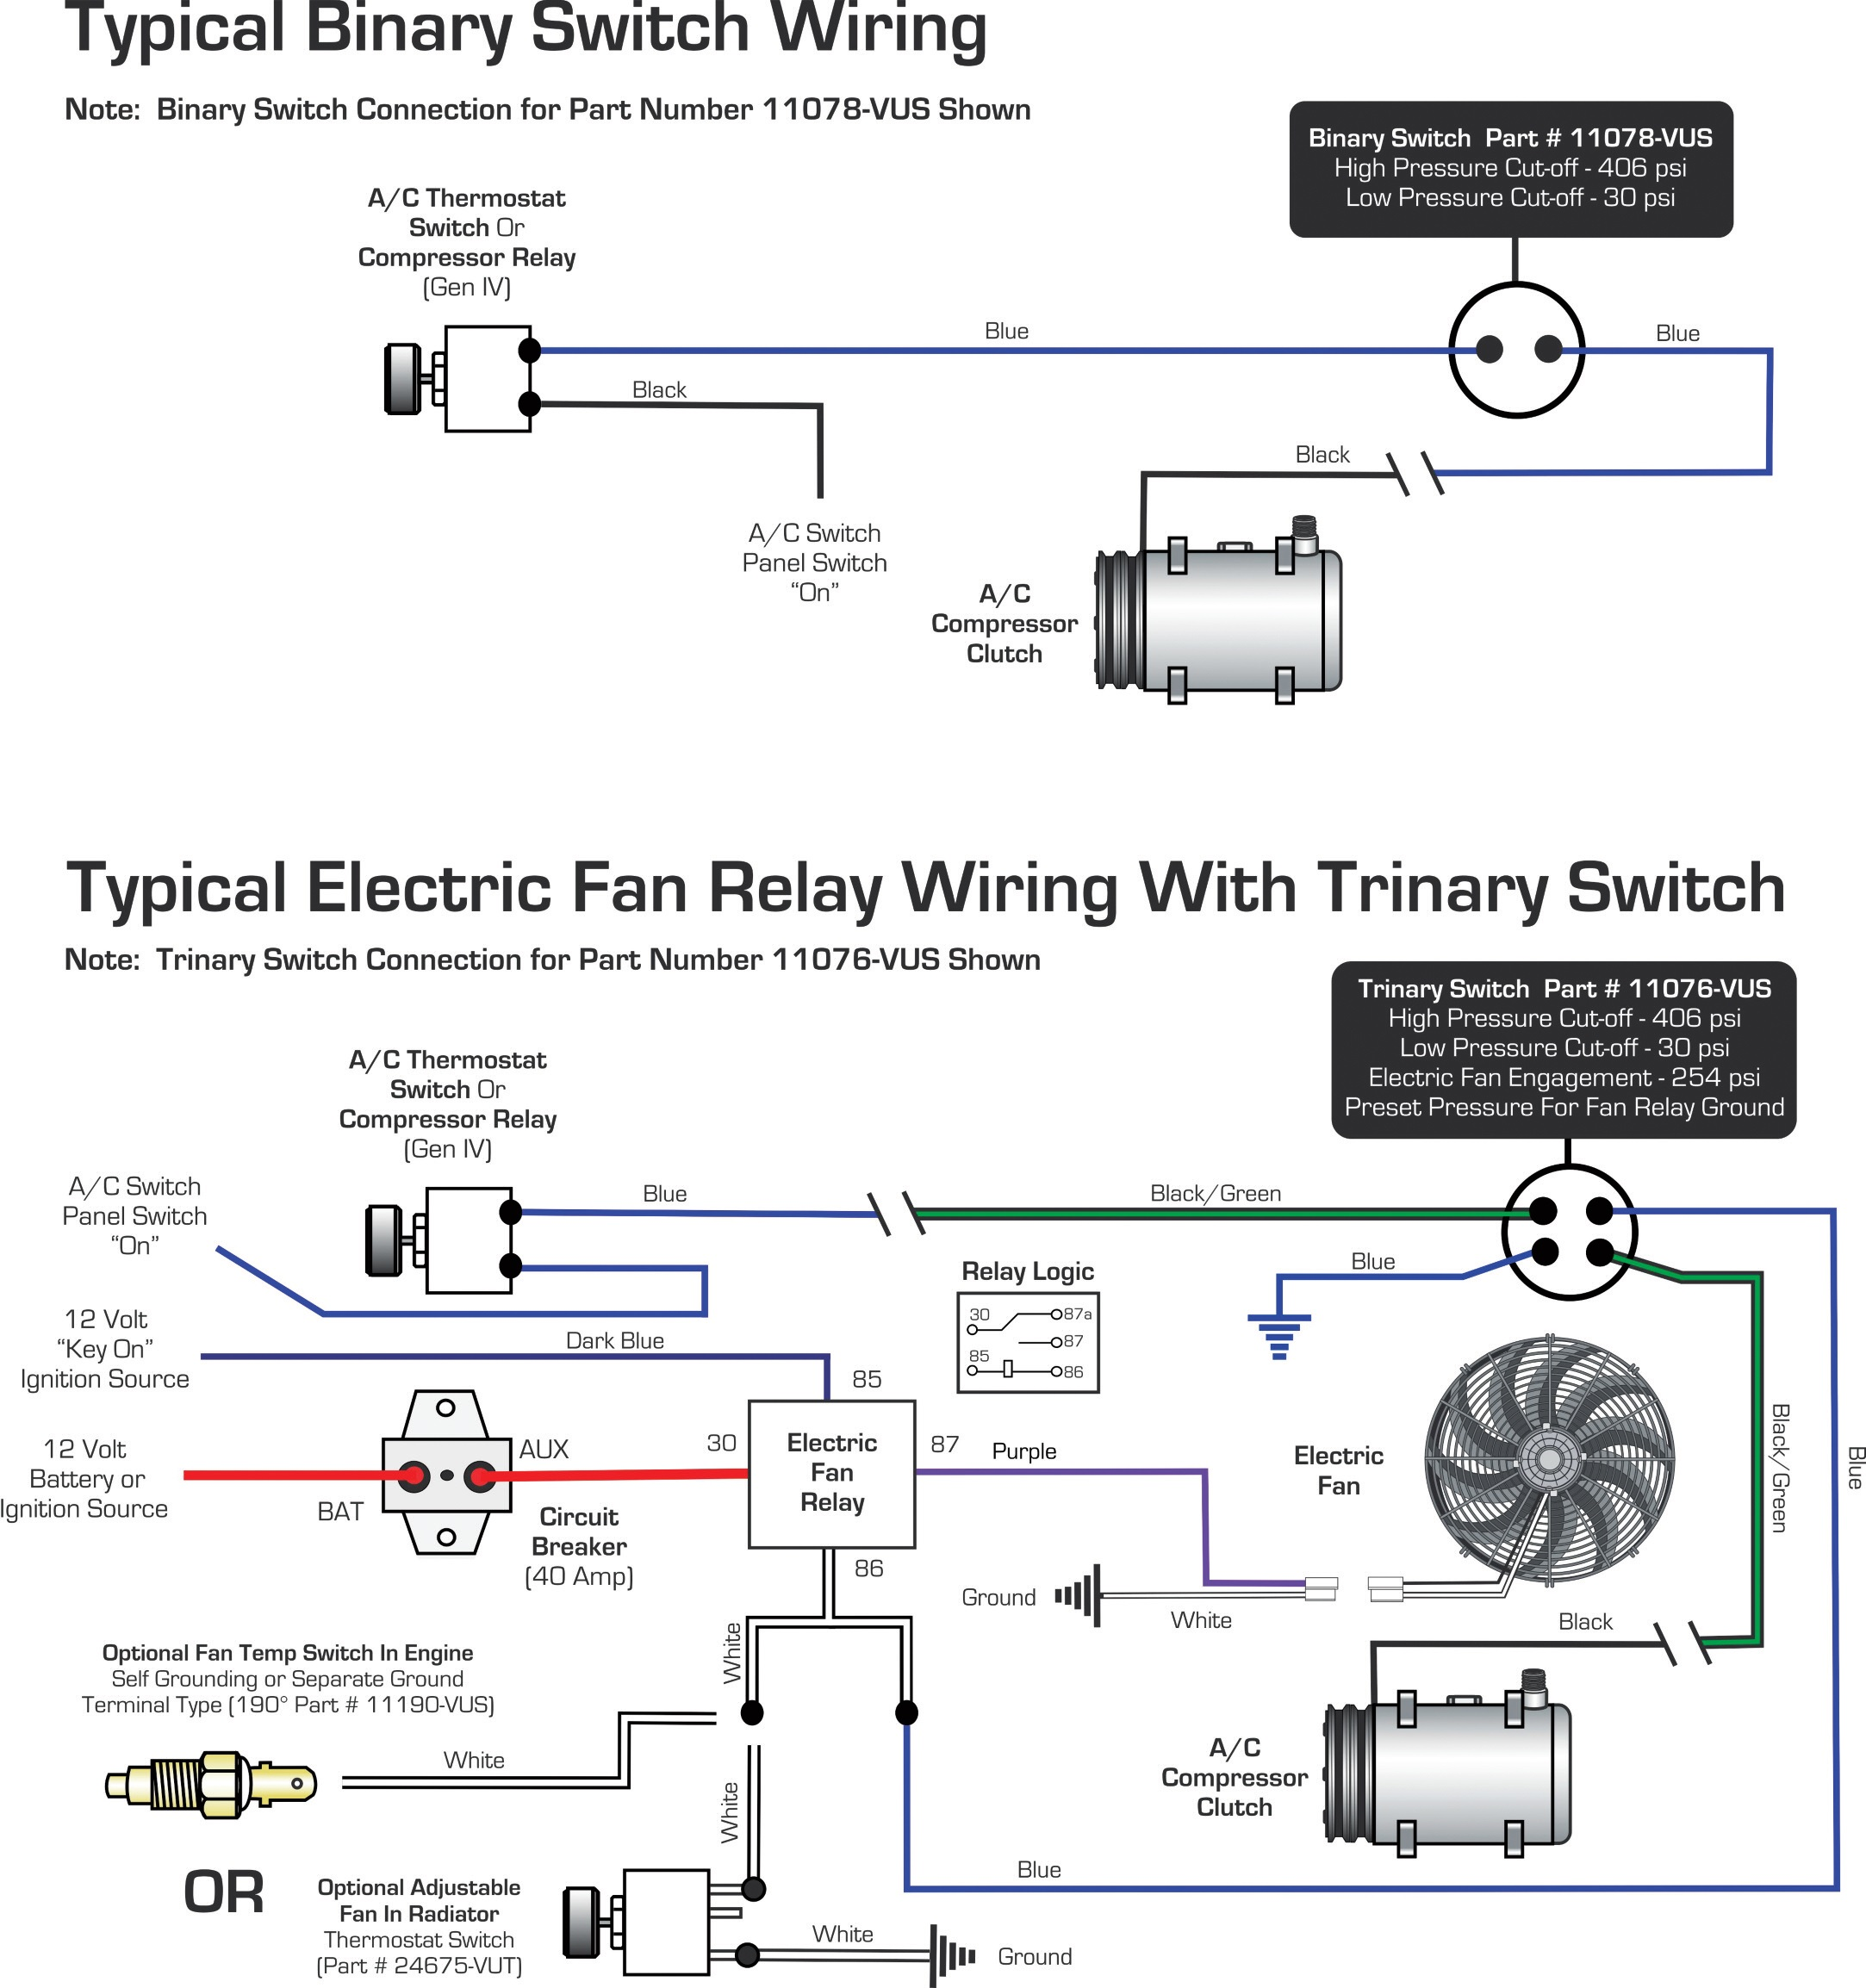 Vintage Air » Blog Archive WIRING DIAGRAMS Binary Switch ... on